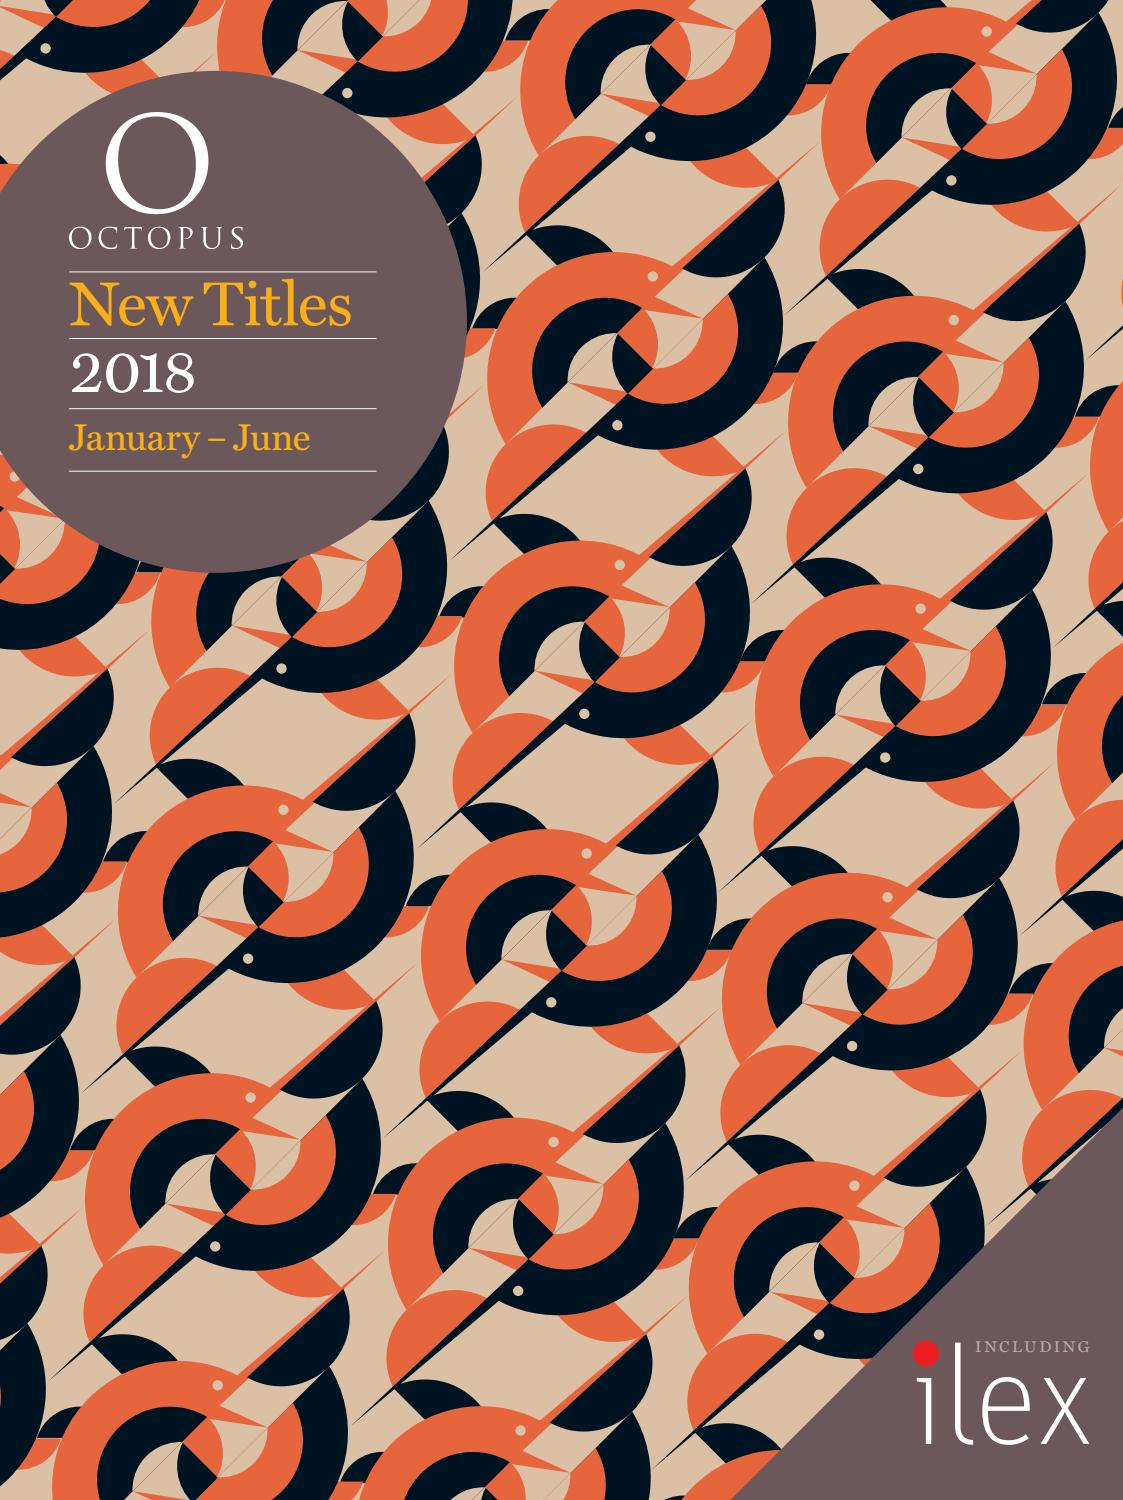 Octopus Publishing Group Catalogue Jan - Jun 2018 by Octopus